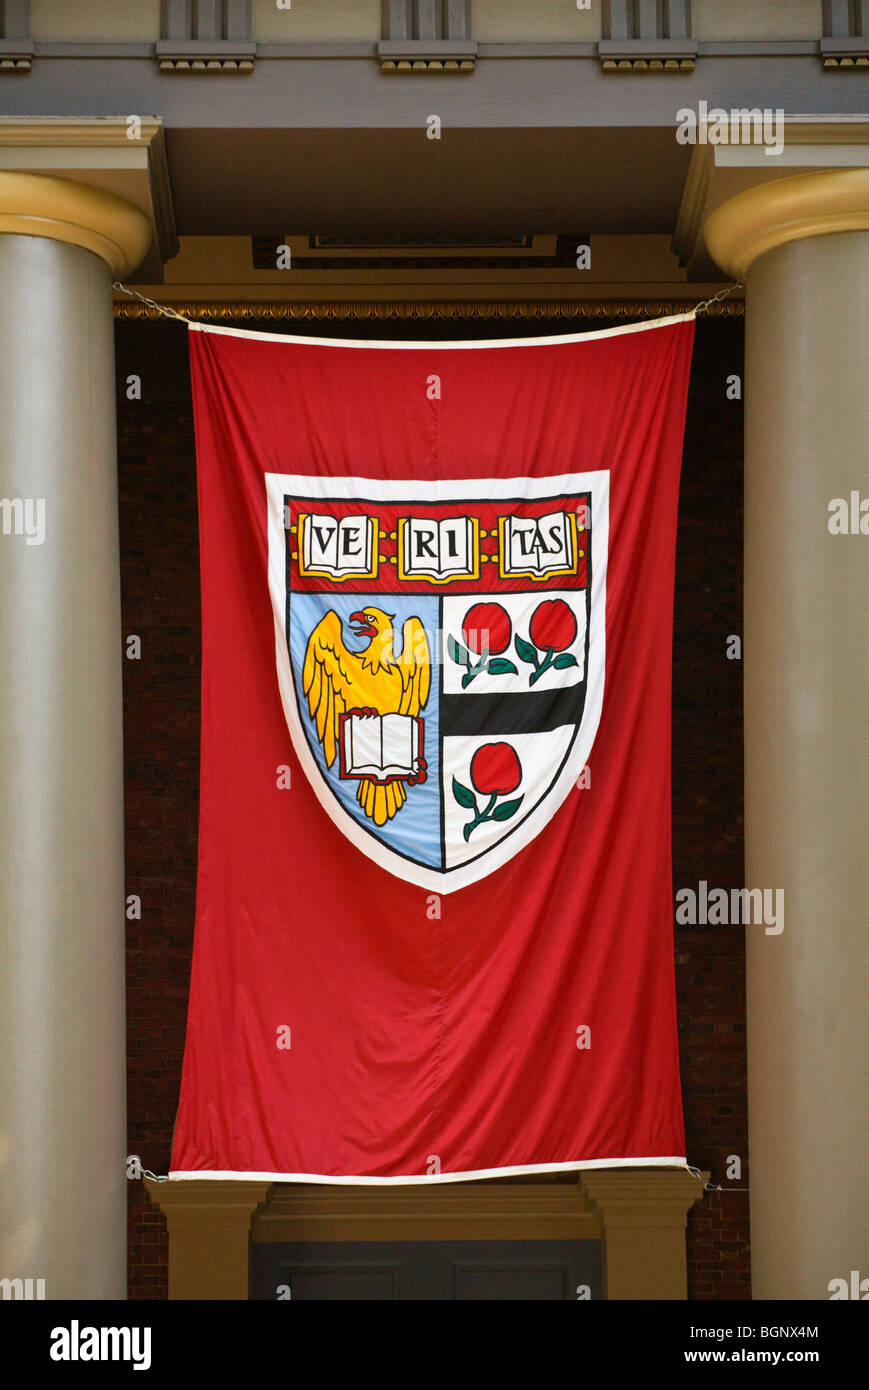 VERITAS SHIELD of HARVARD UNIVERSITY - CAMBRIDGE, MASSACHUSETTS - Stock Image